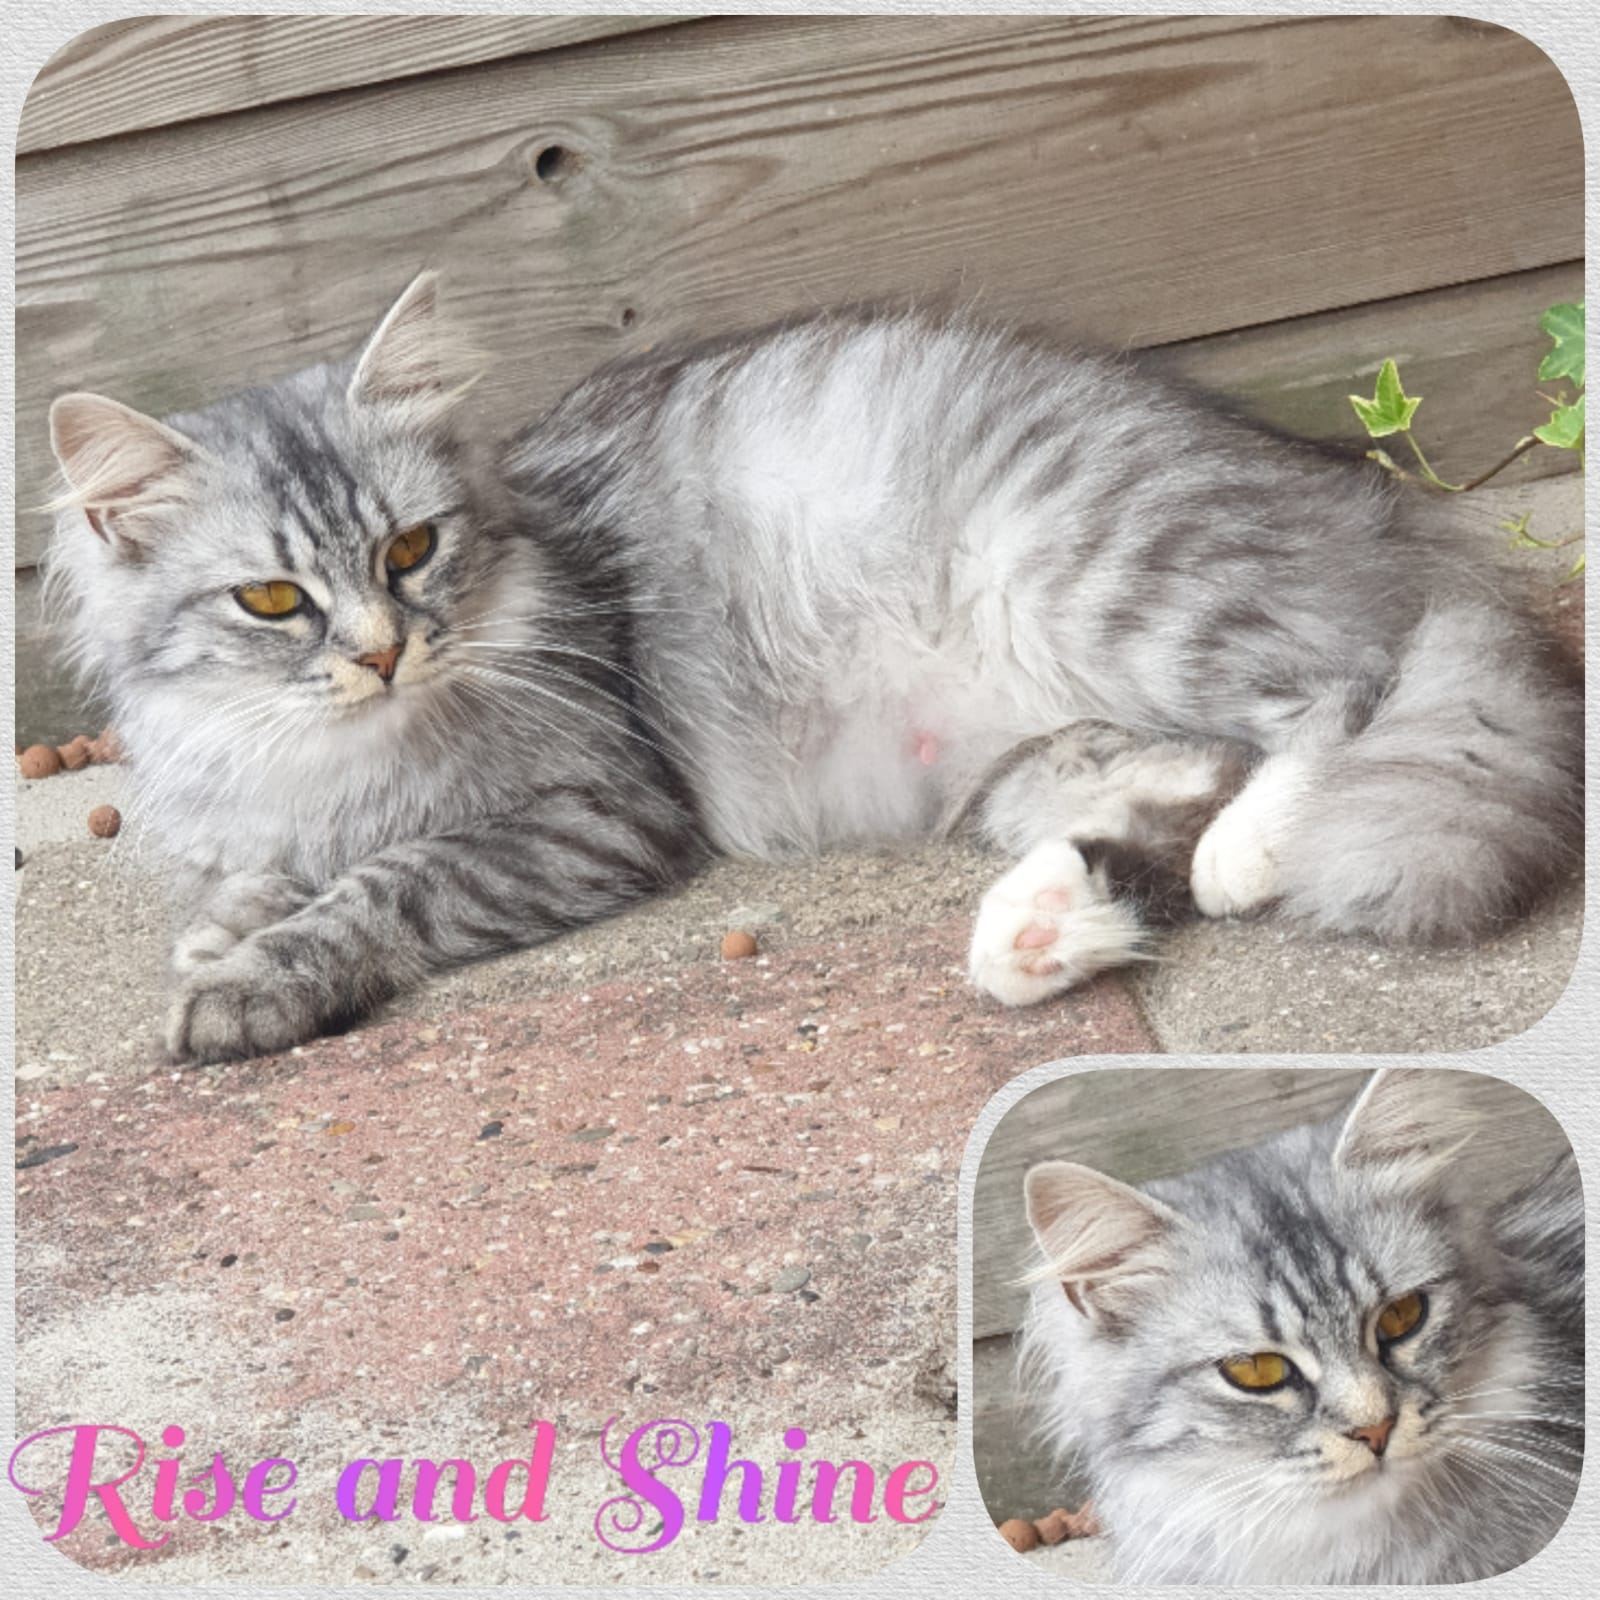 JaiDje's Rise and Shine - Siberian female, black silver  tabby mackerel with white